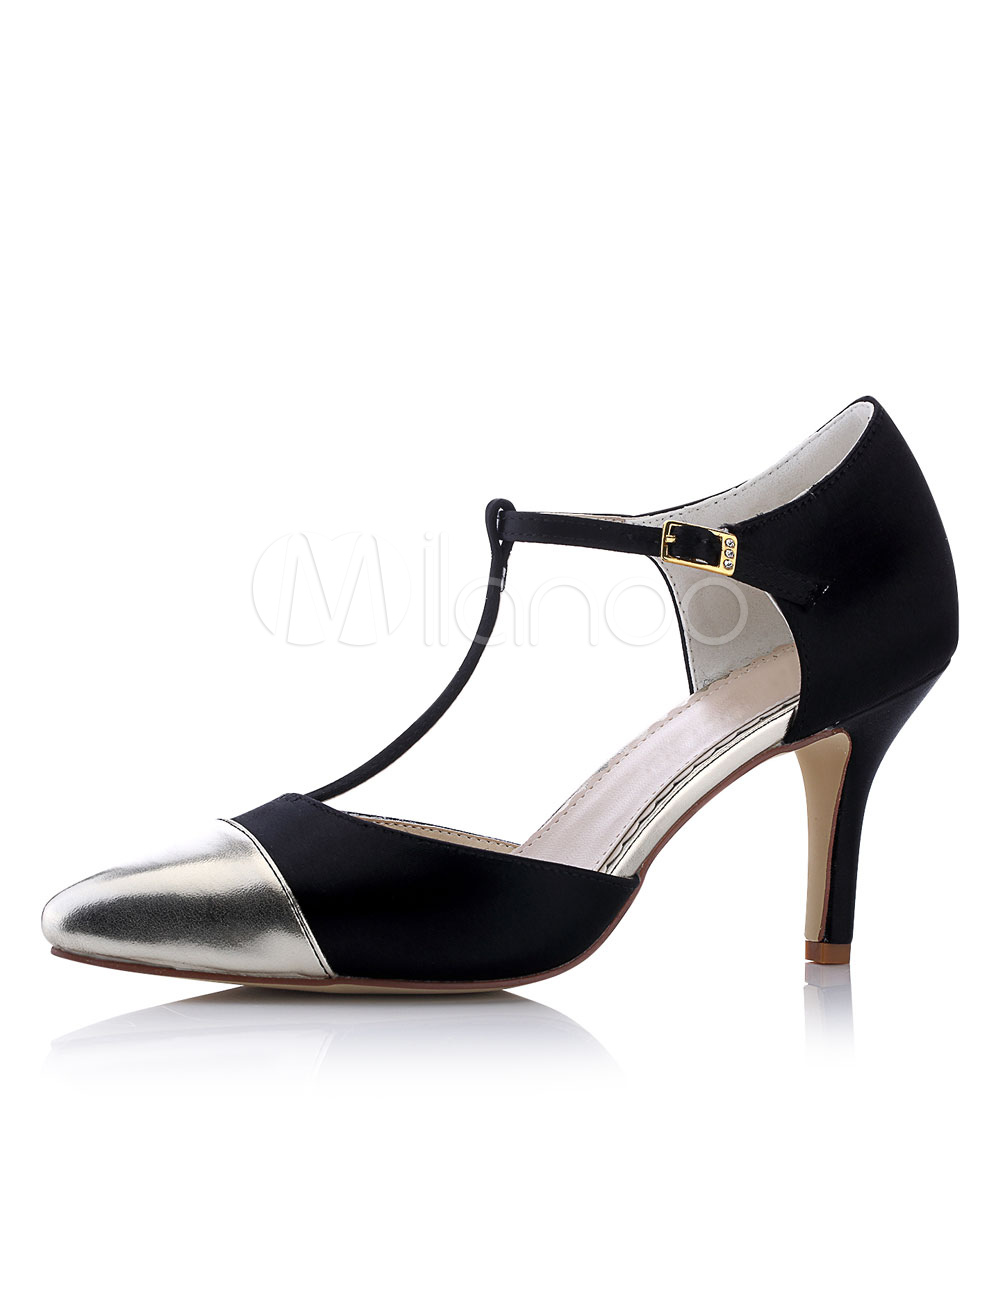 Buy Black Wedding Shoes Satin High Heel Pointed Toe T Type Buckled Bridal Shoes for $56.99 in Milanoo store